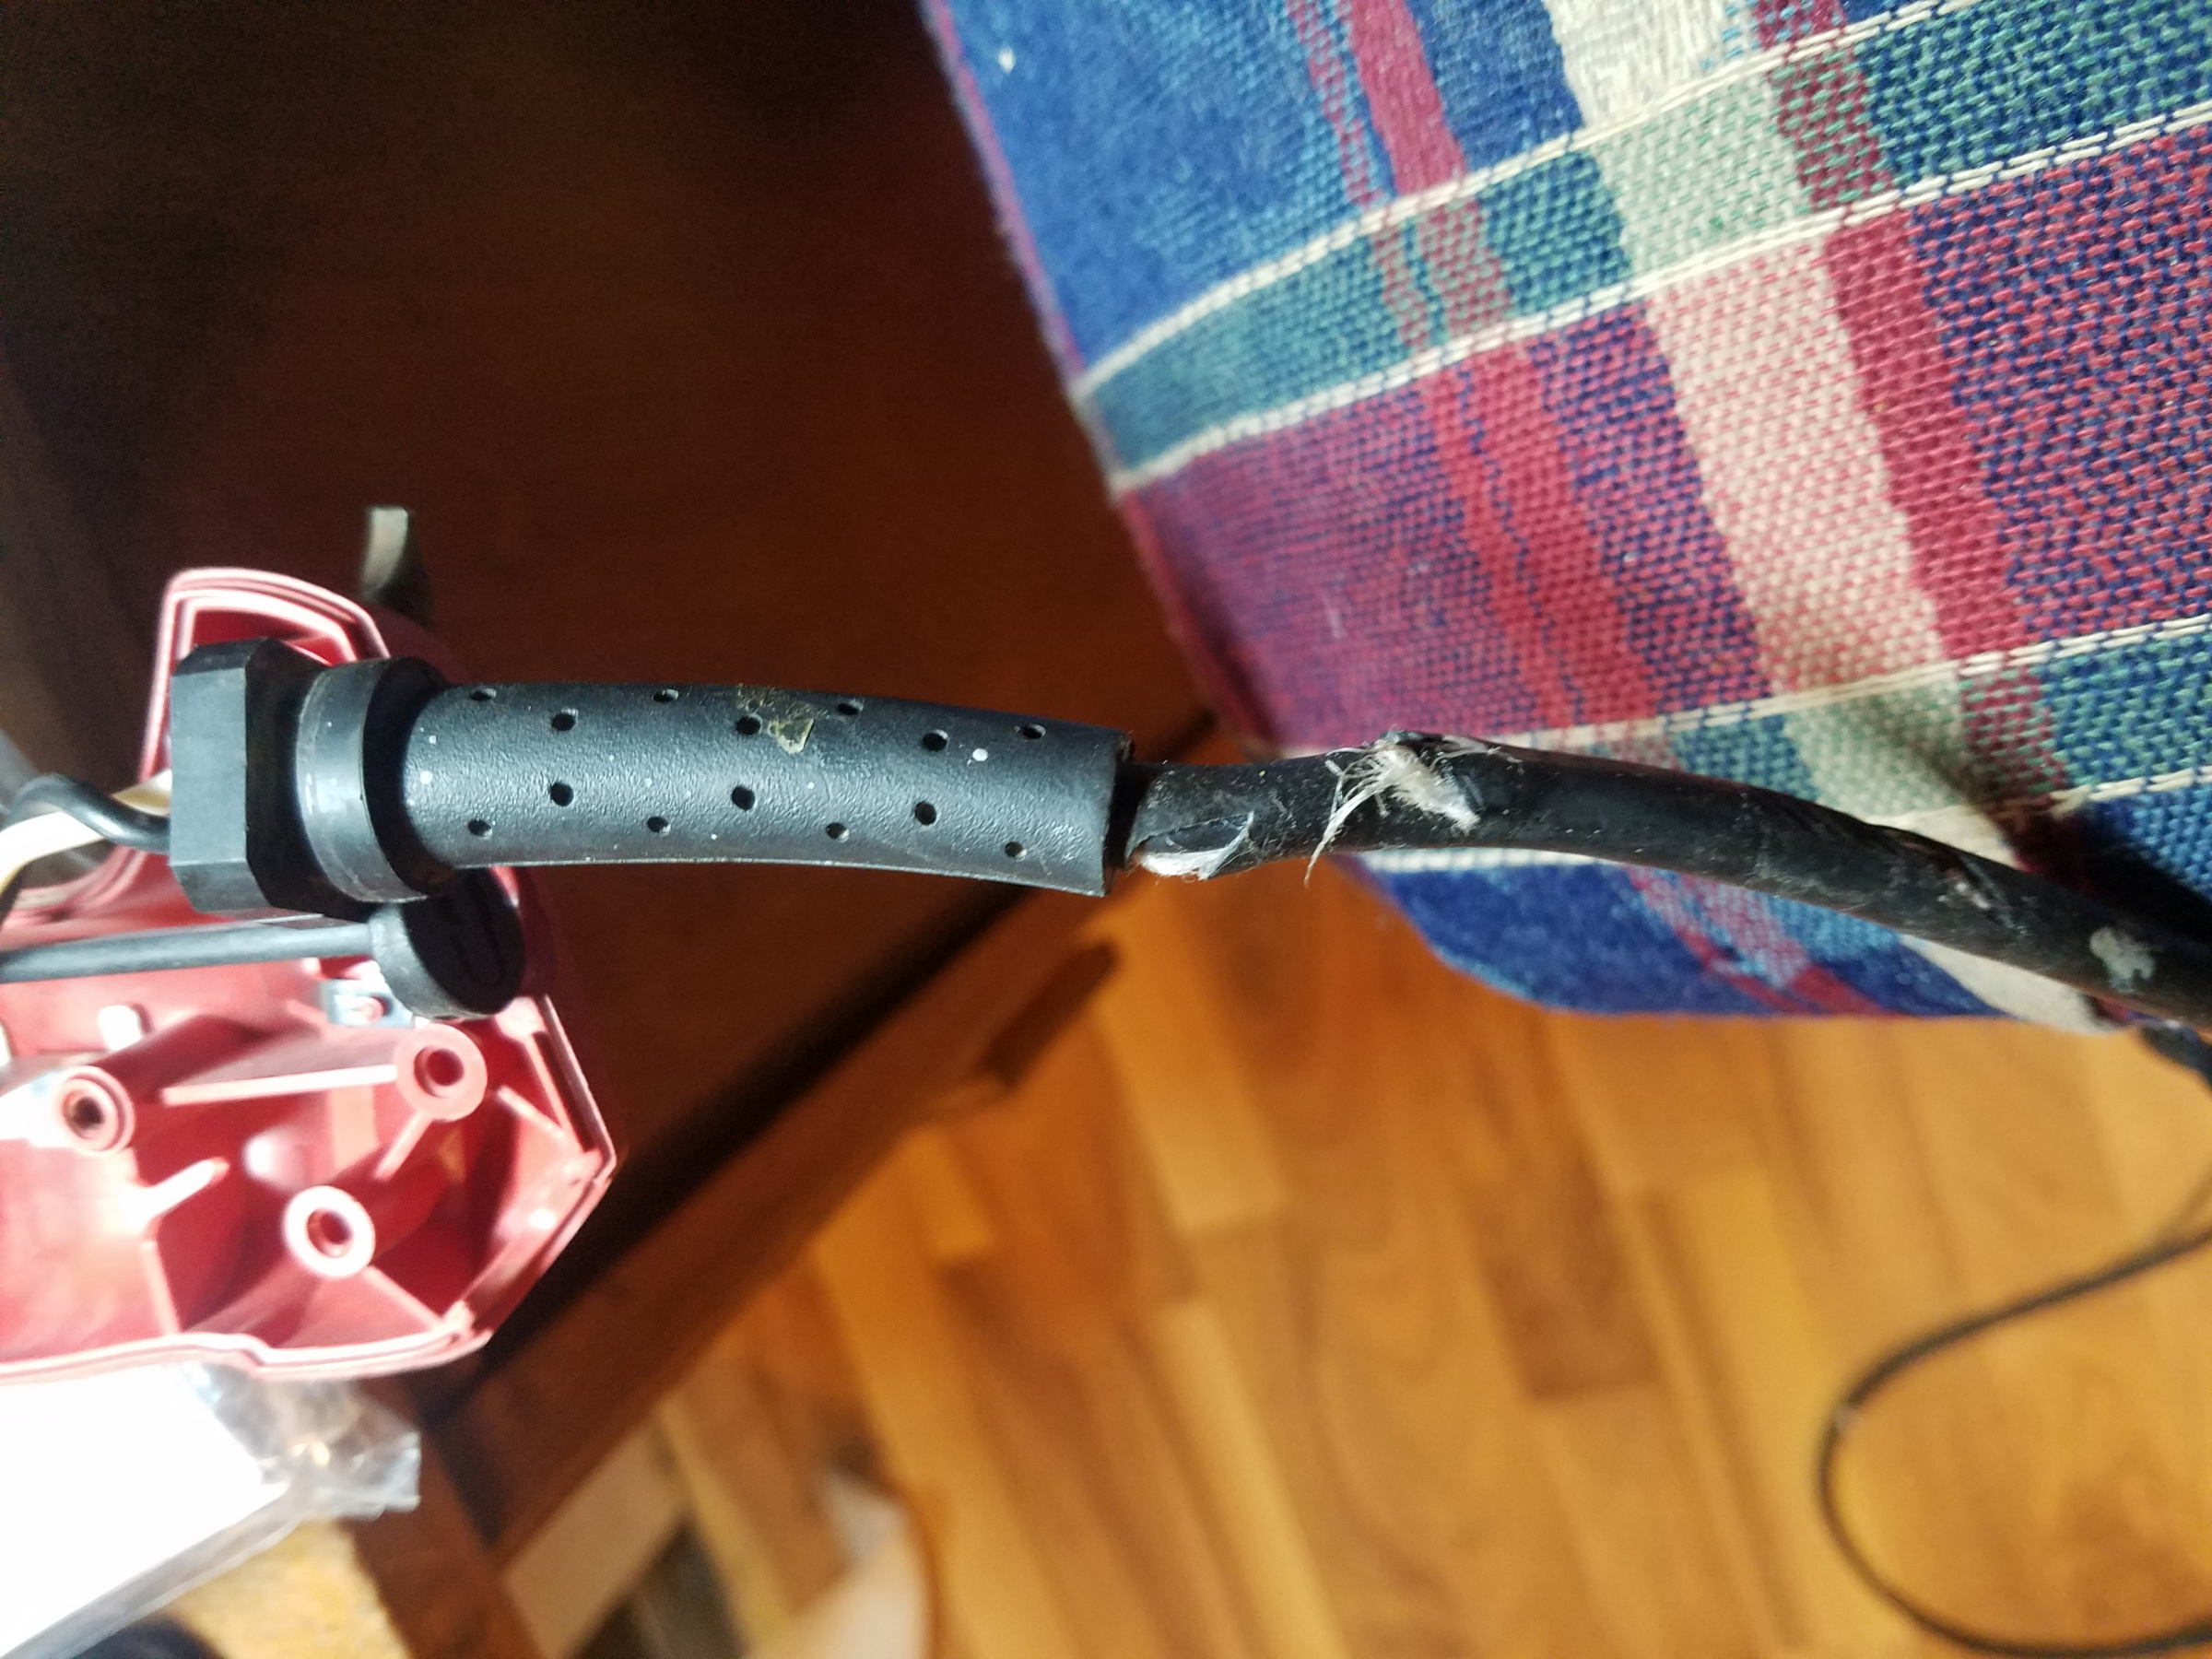 cord repair - how to disconnect wires-20191106_185820.jpg